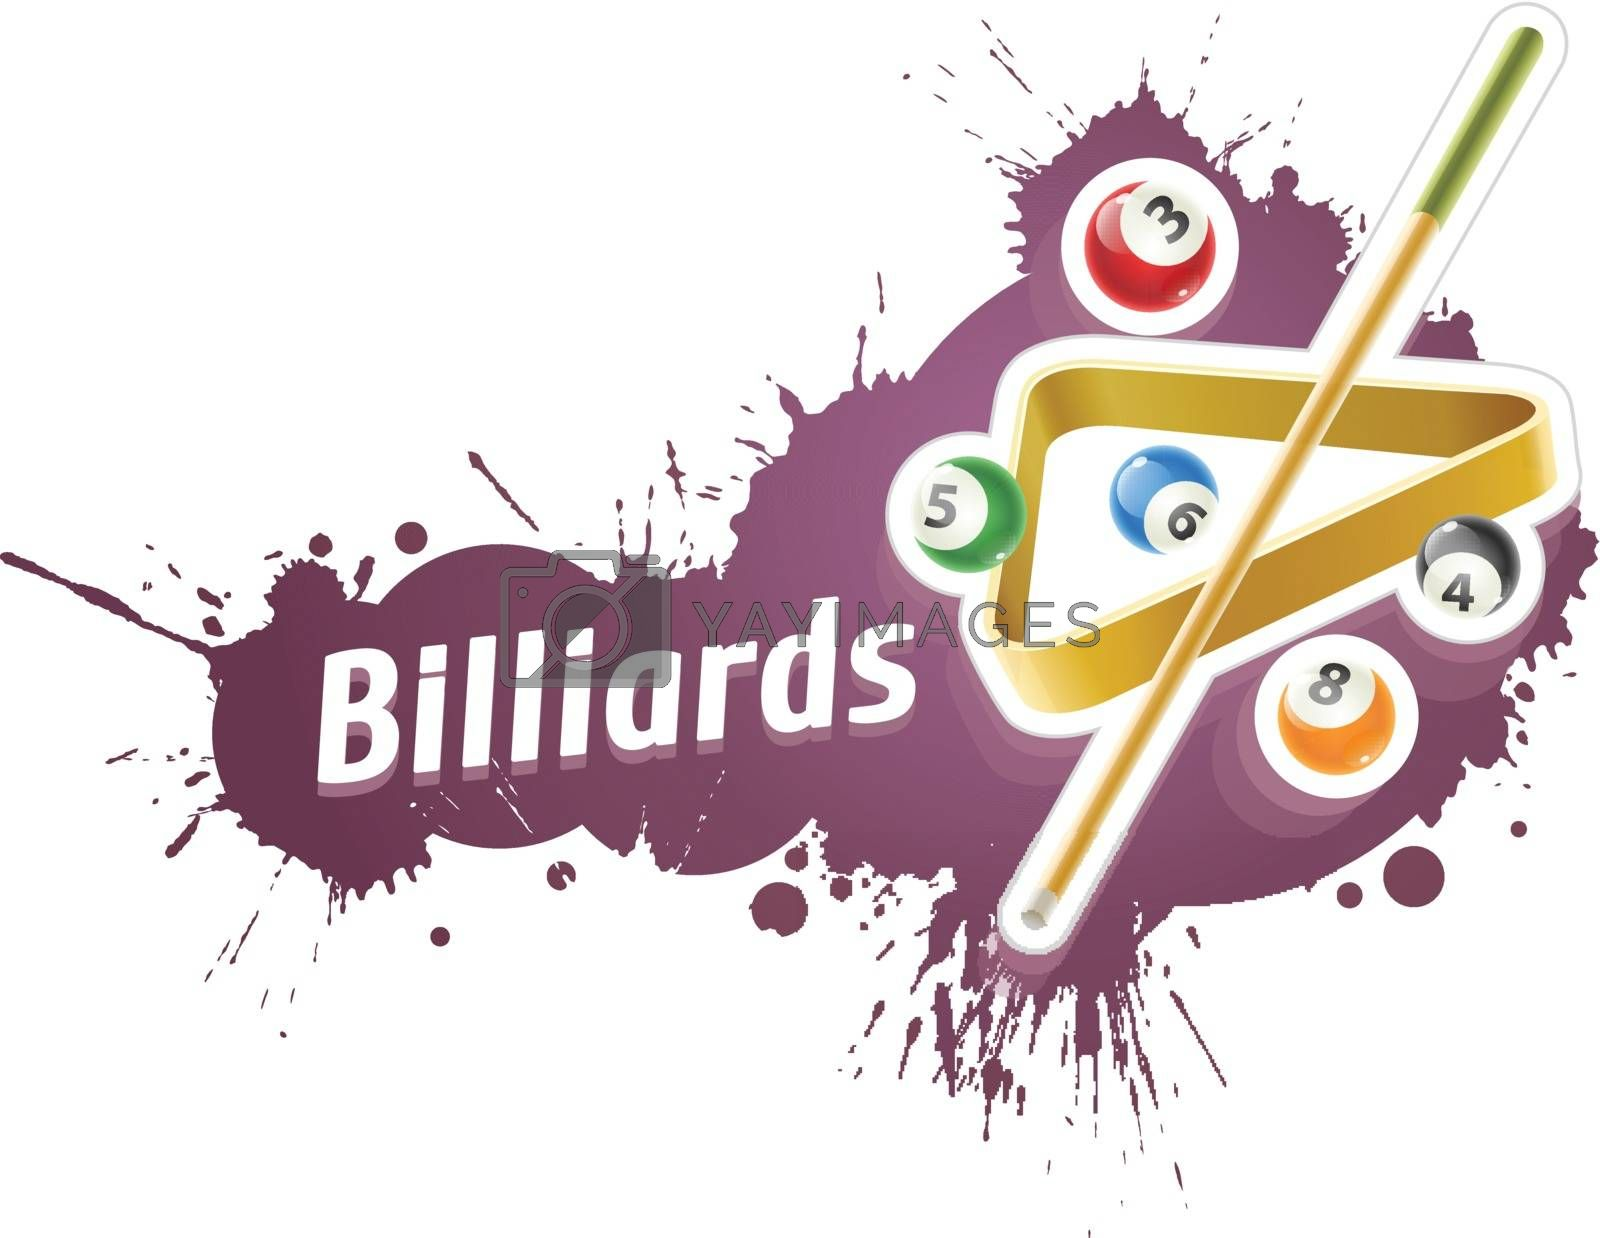 Ball and cue for billiard game by LoopAll